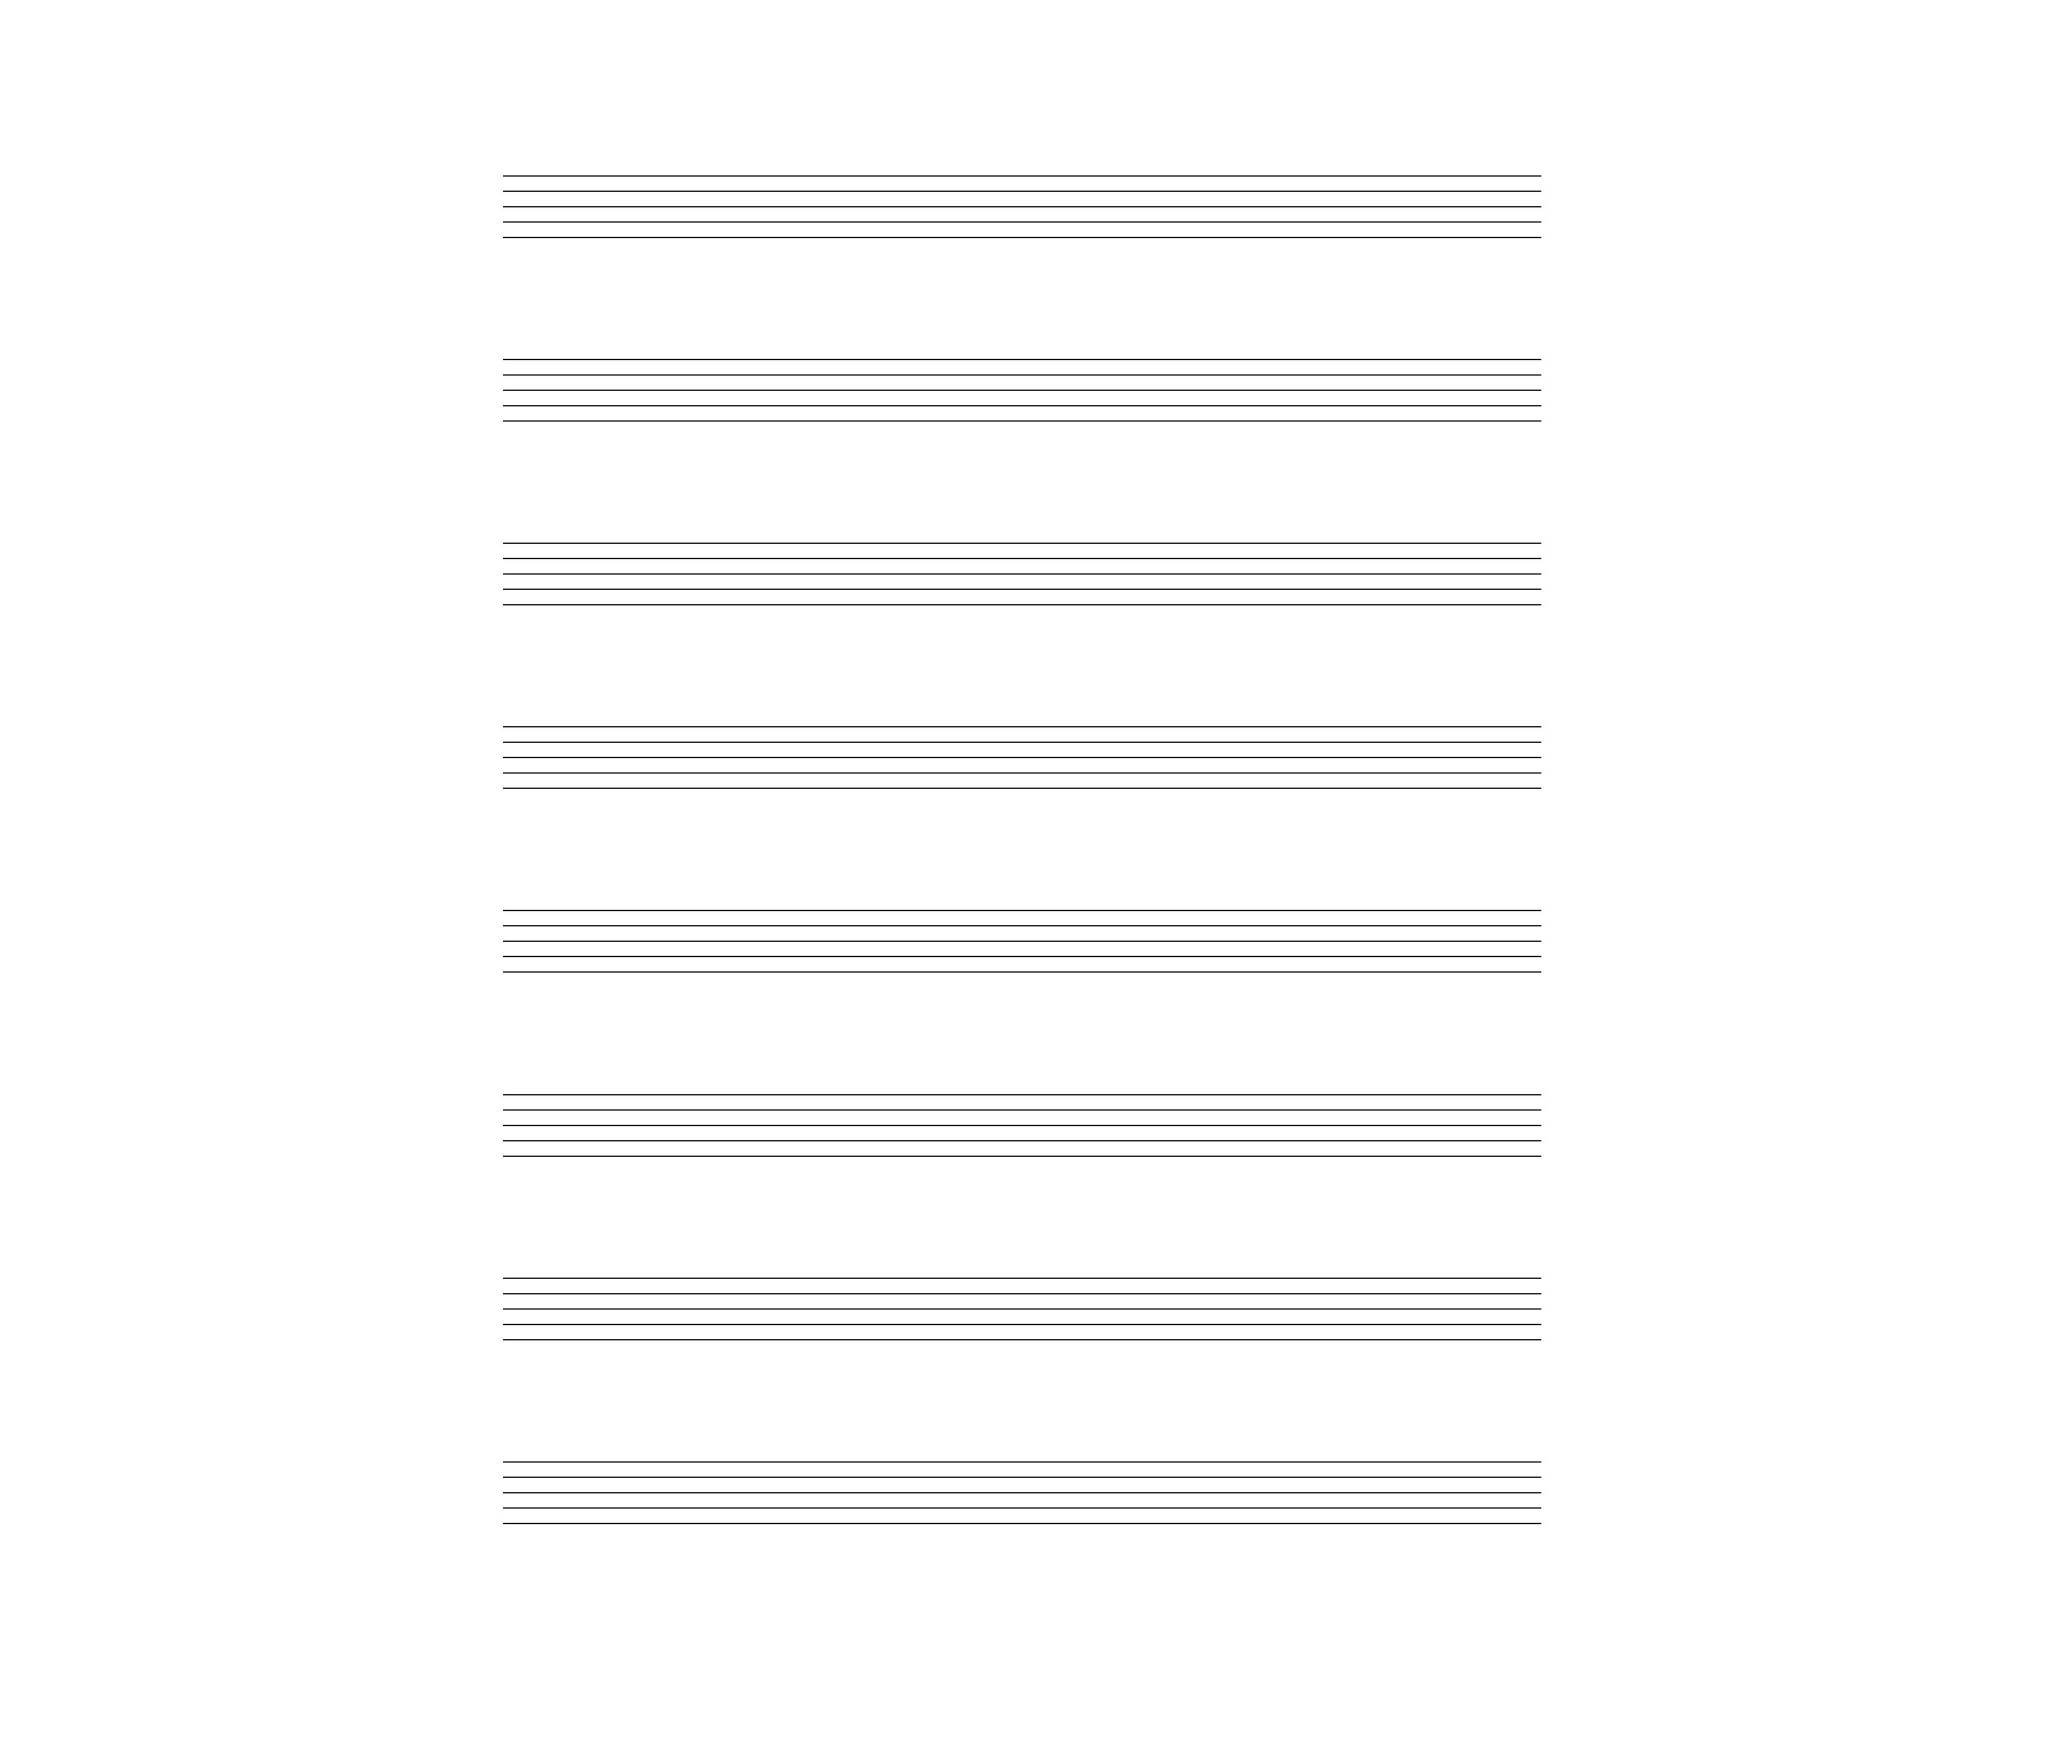 8-staves-without-clefs-blank-sheet-music